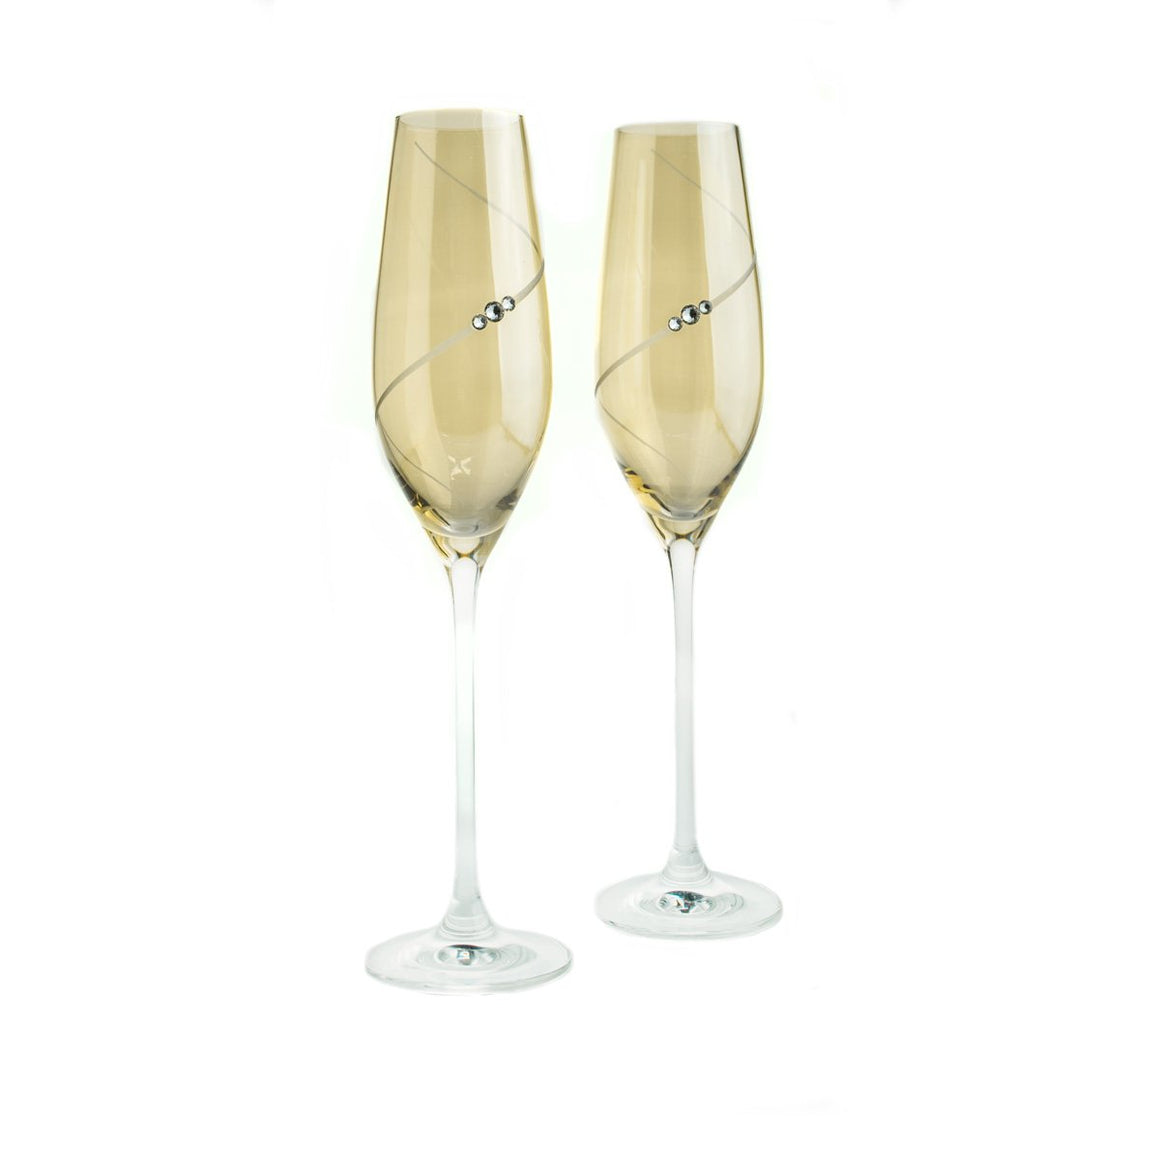 Champagne Glasses - Colored Yellow Swarovski Champagne Glasses, Pair